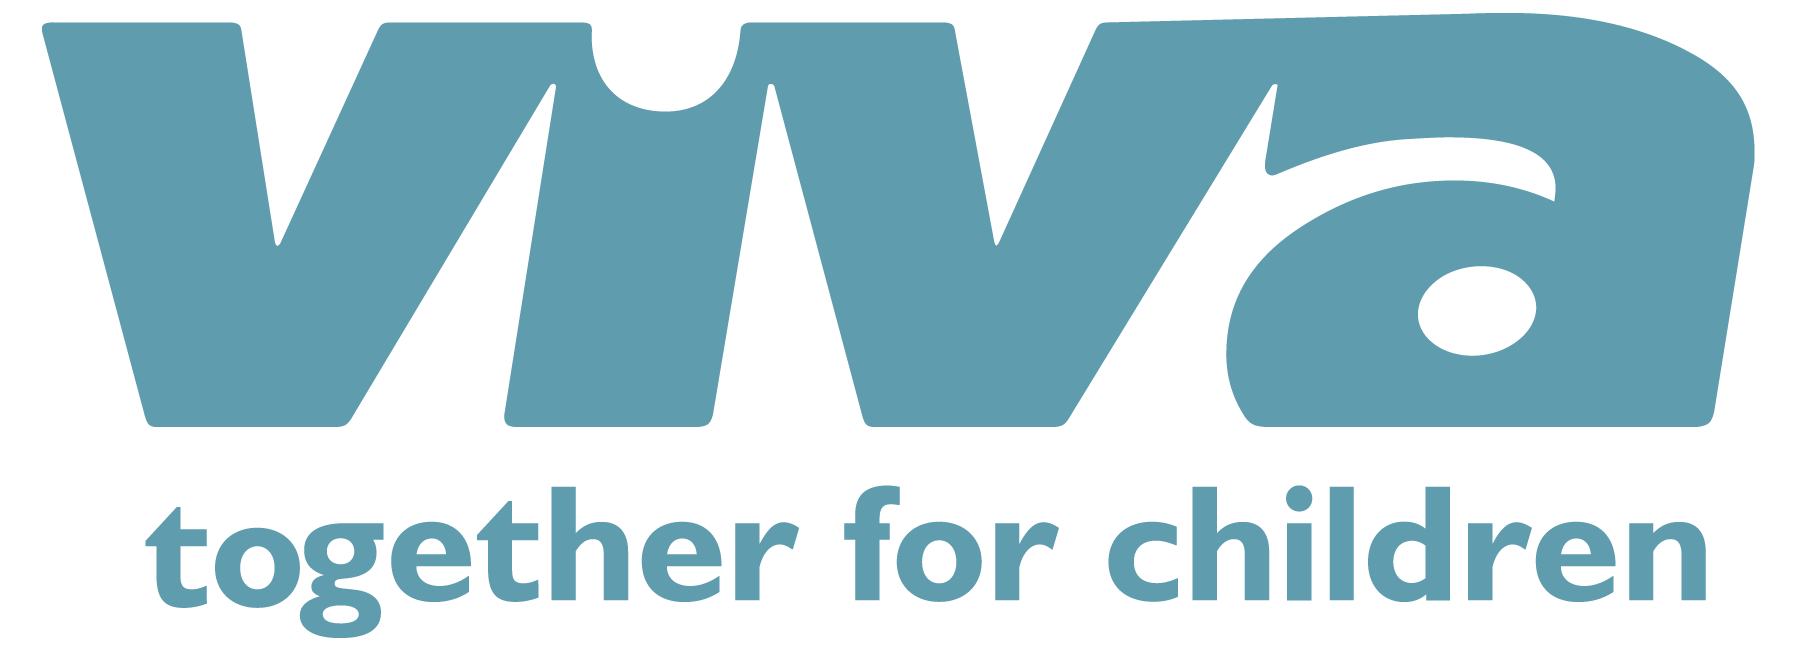 Viva logo - blue copy.png